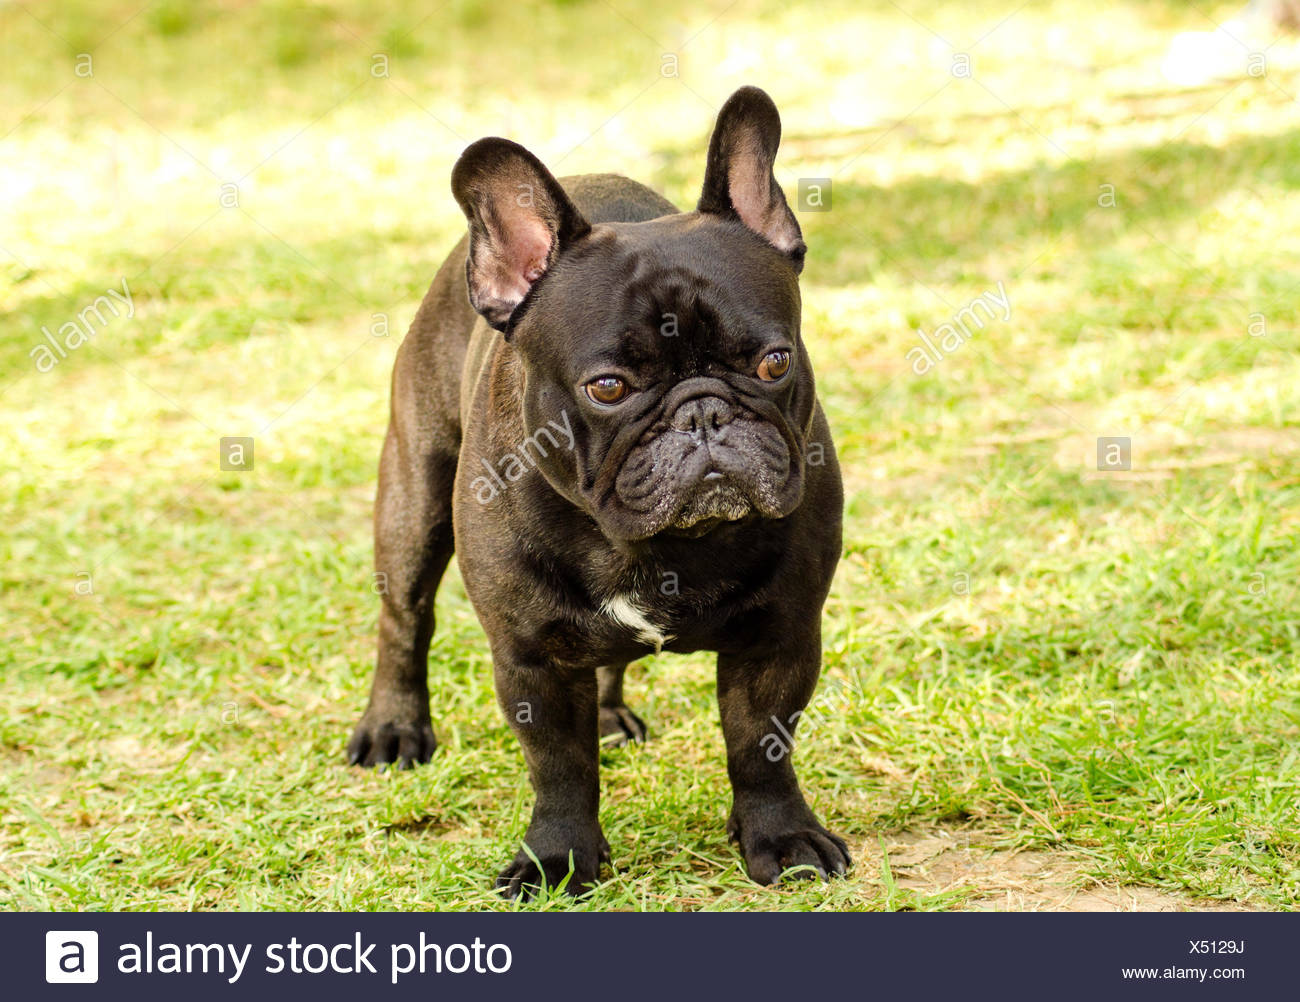 A small,young,beautiful,black French Bulldog standing on the lawn. Frenchies have distinct bat ears, a short face and they are good companion dogs. Stock Photo